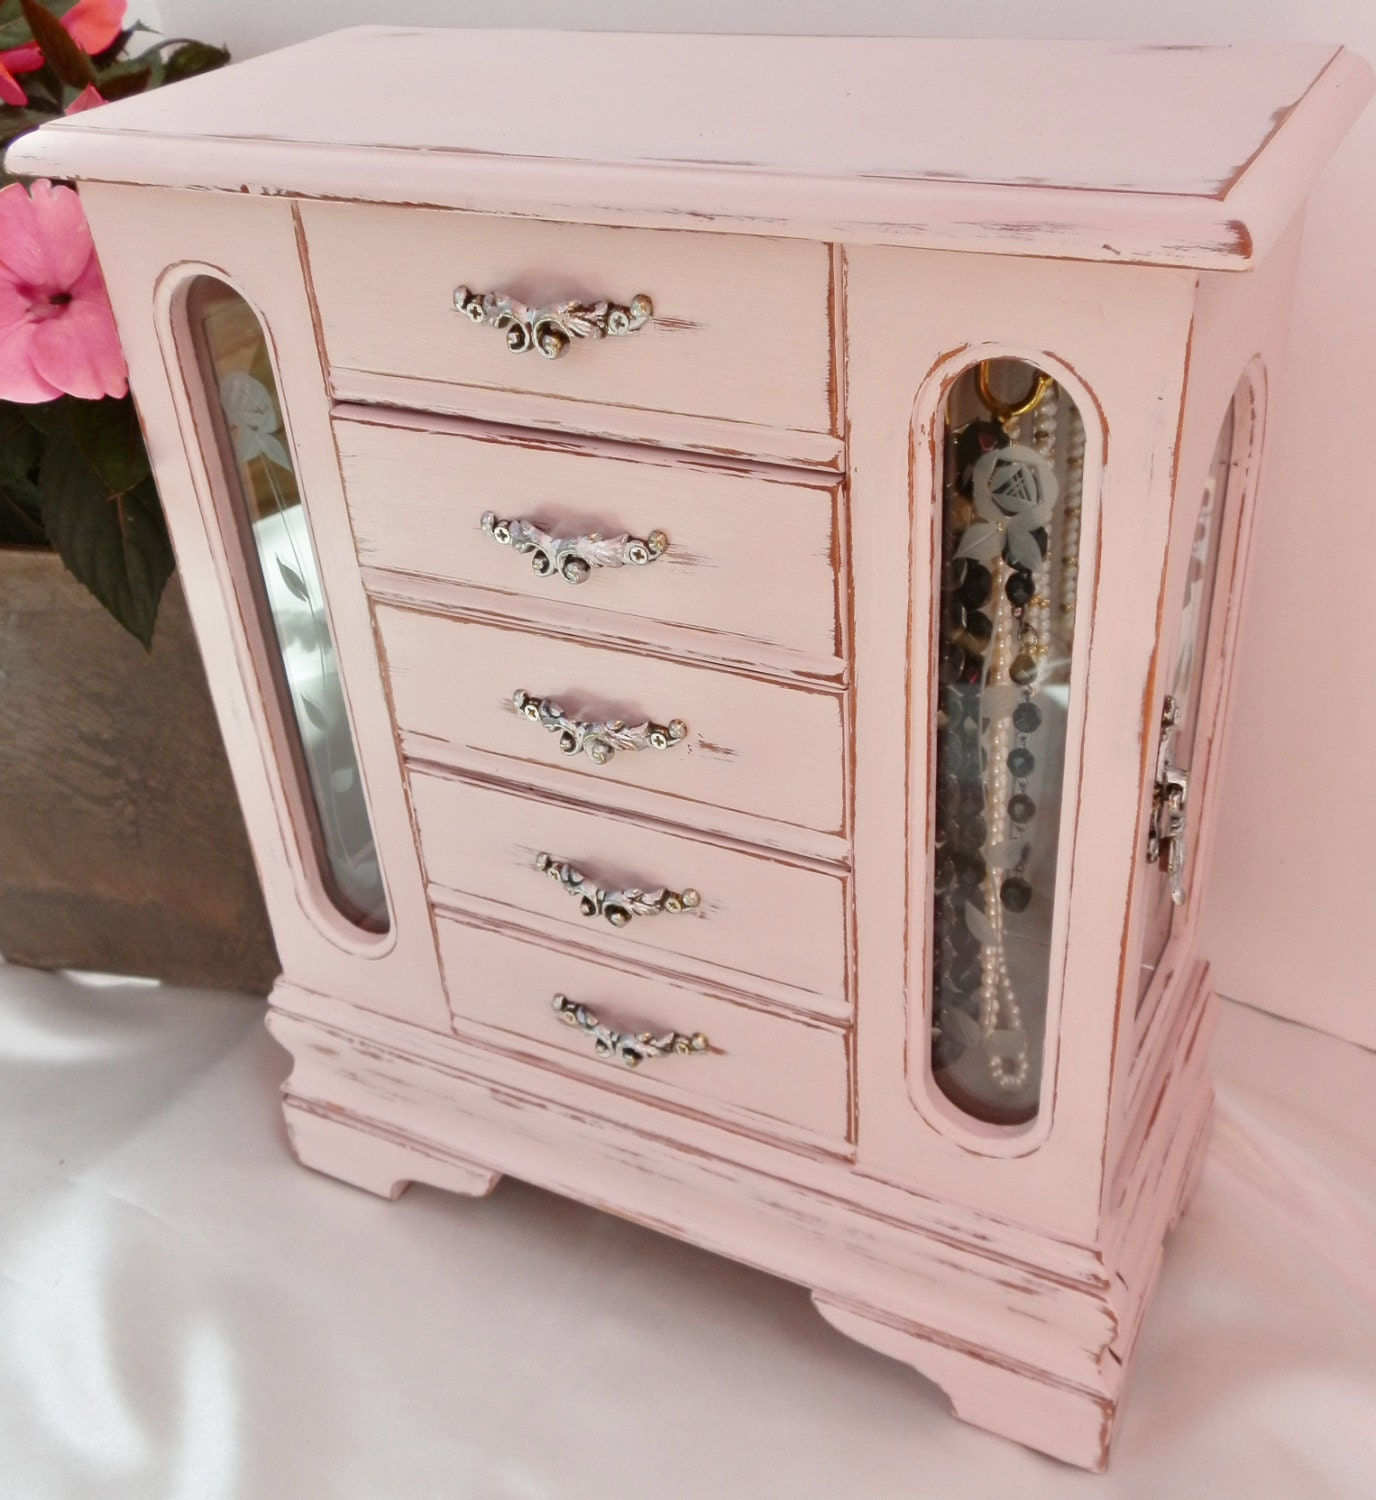 Upcycled Jewelry Box Distressed Painted In Annie Sloan Chalk